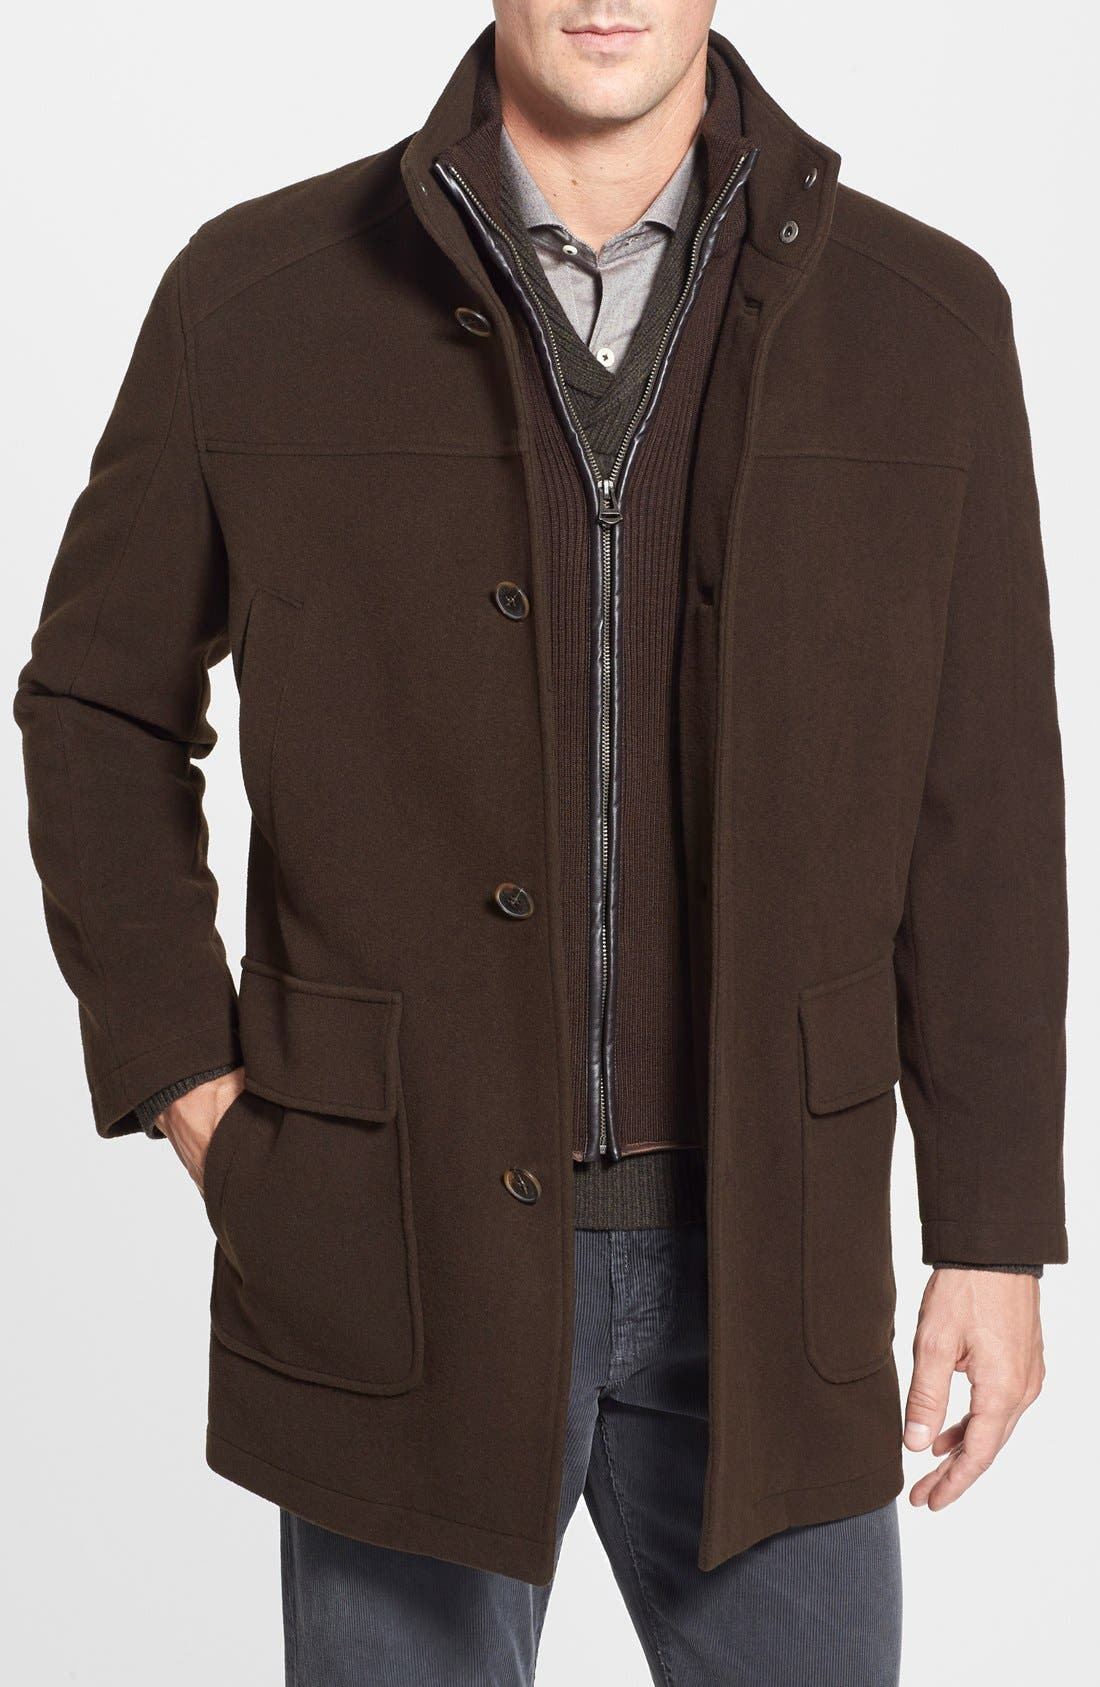 Wool Blend Topcoat with Inset Bib,                             Main thumbnail 1, color,